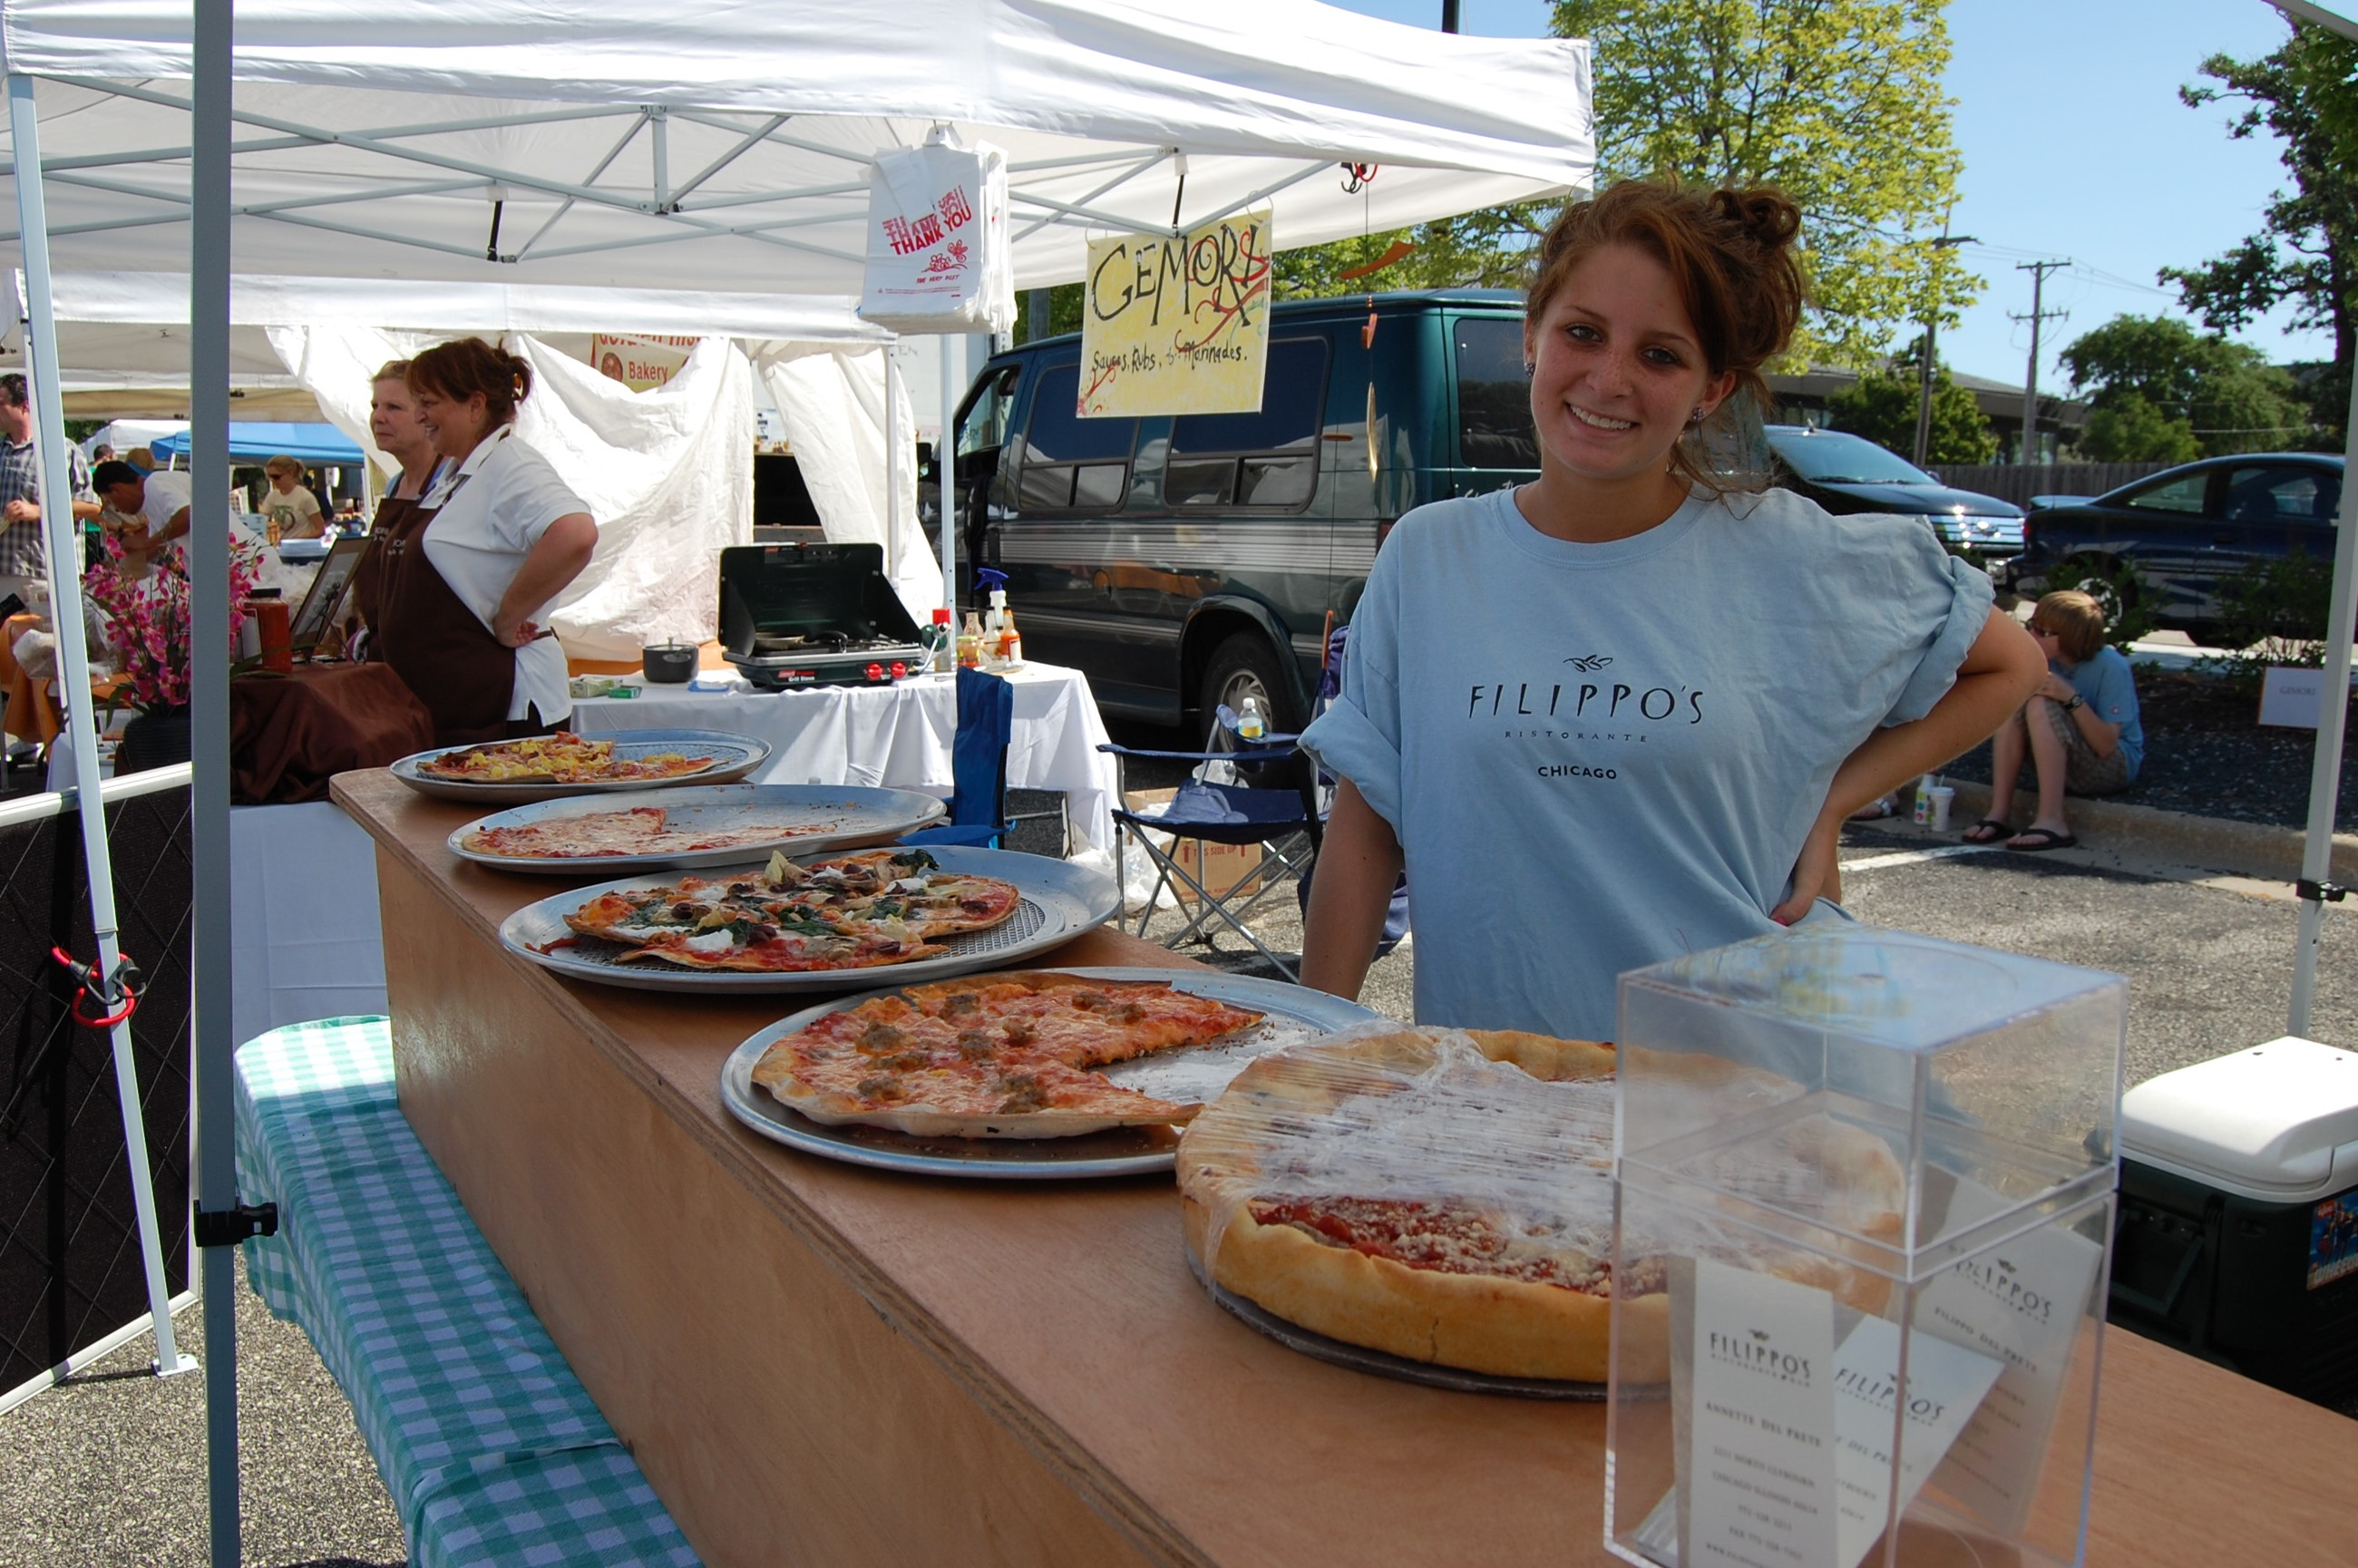 Vendor with multiple pizzas